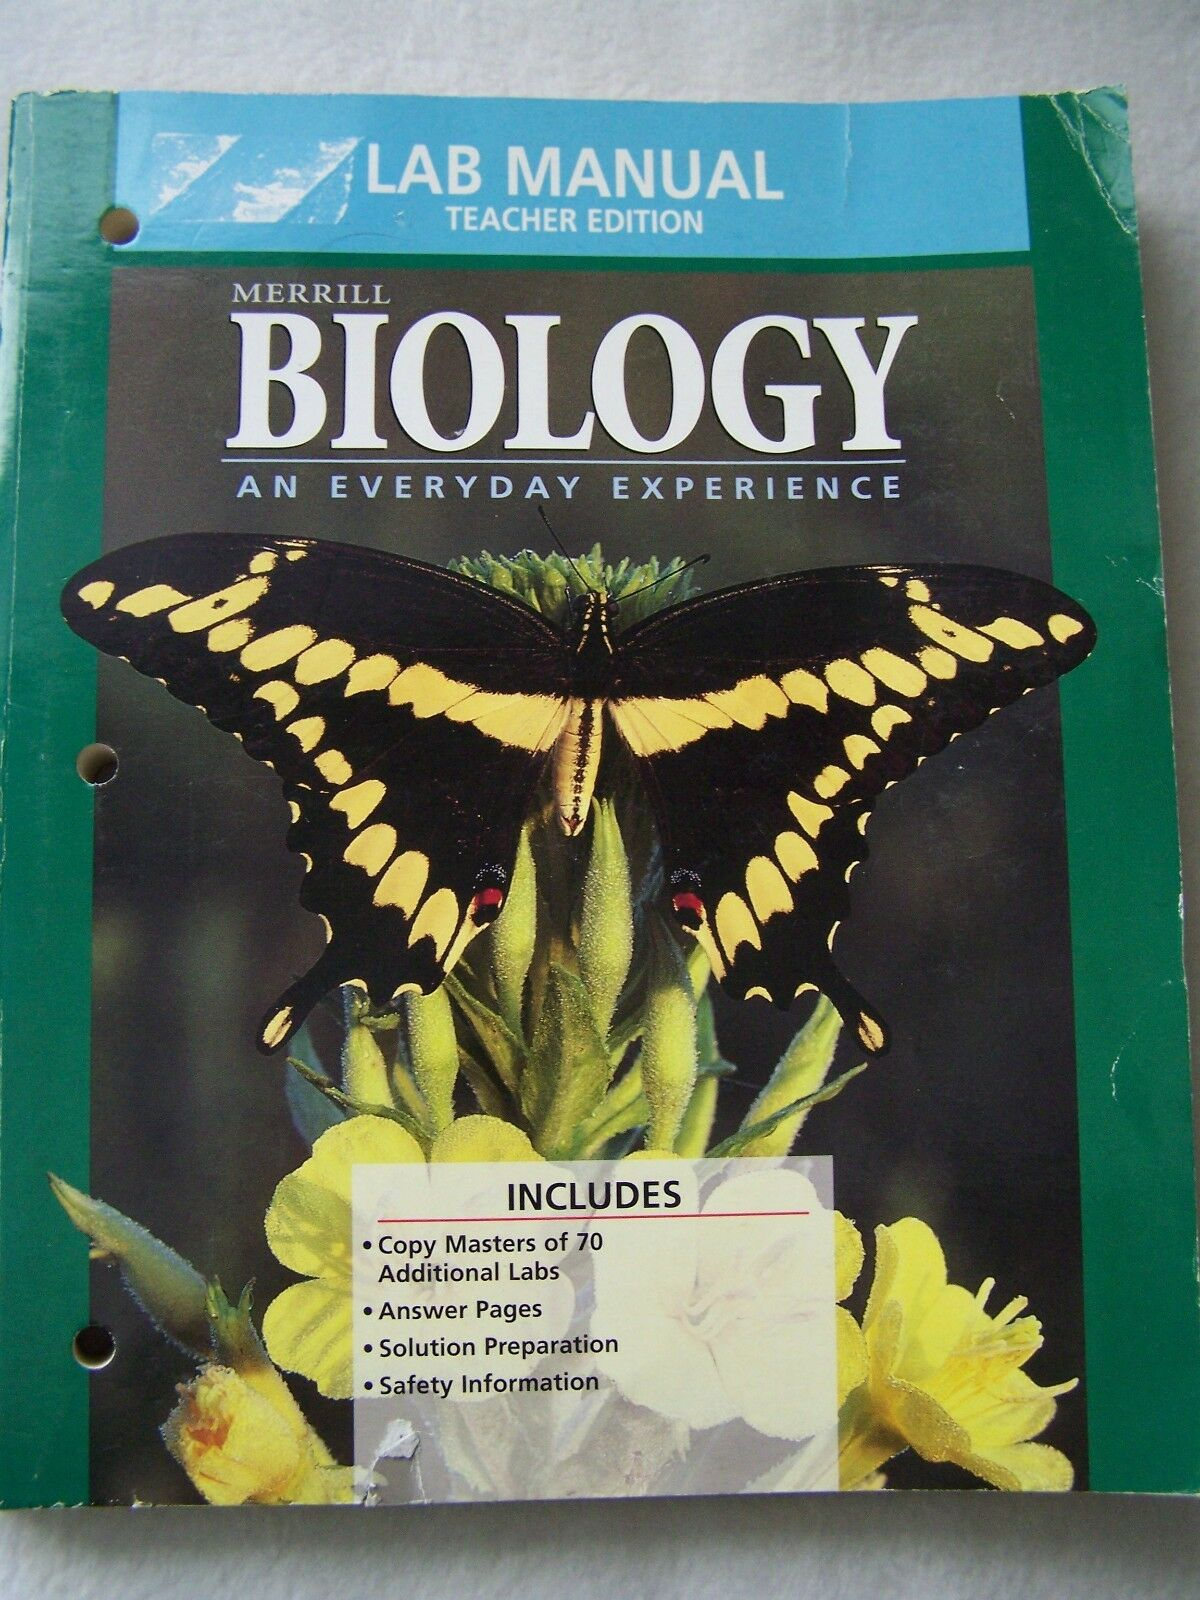 Biology : An Everyday Experience, 1999 by Kaskel, Hummer and Daniel (1999,  Hardcover, Lab Manual, Teacher's Edition of Textbook)   eBay